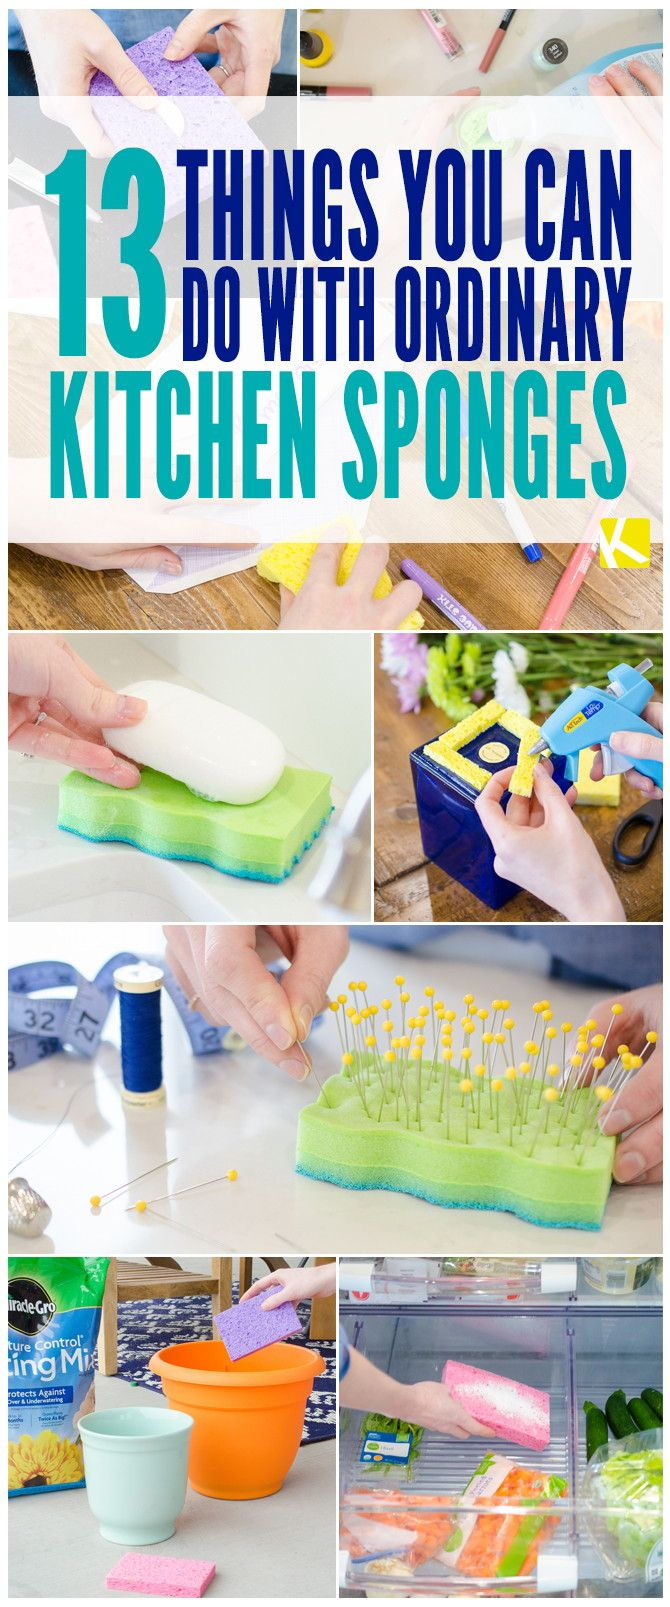 13 Ways to Use a Sponge That You've Never Thought of Before! - The Krazy Coupon Lady